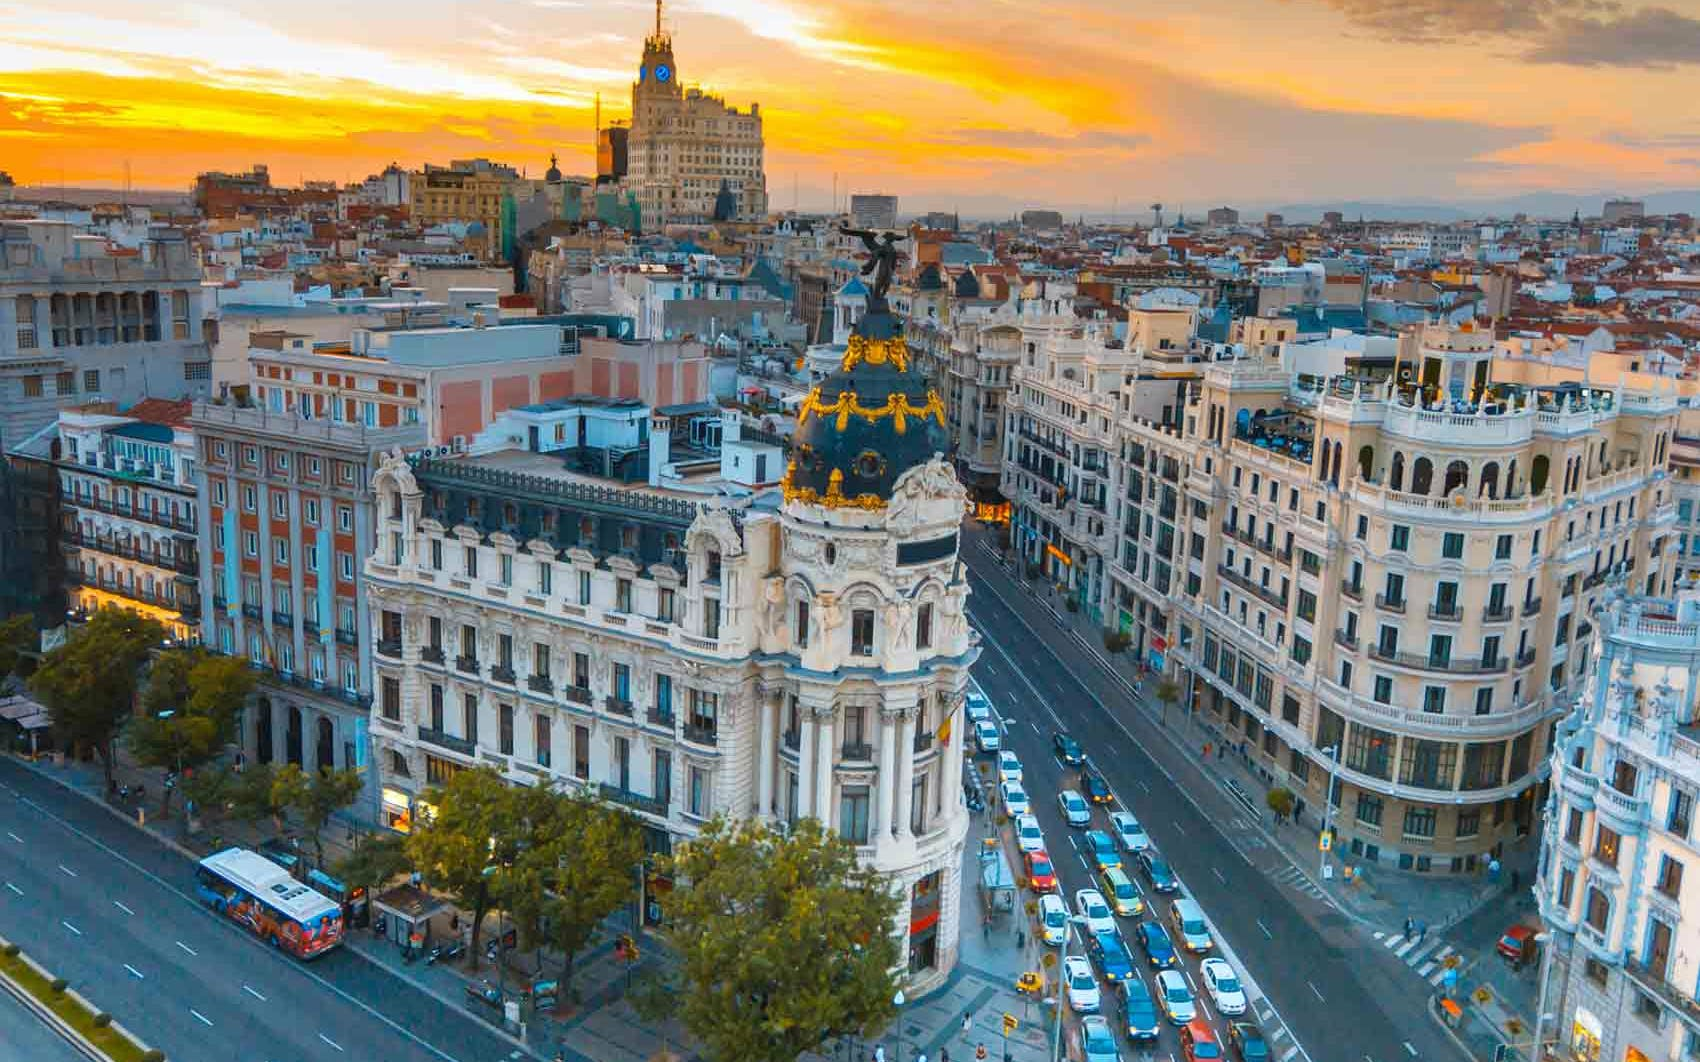 skip the line prado museum tickets & madrid hop on hop off city tour-1